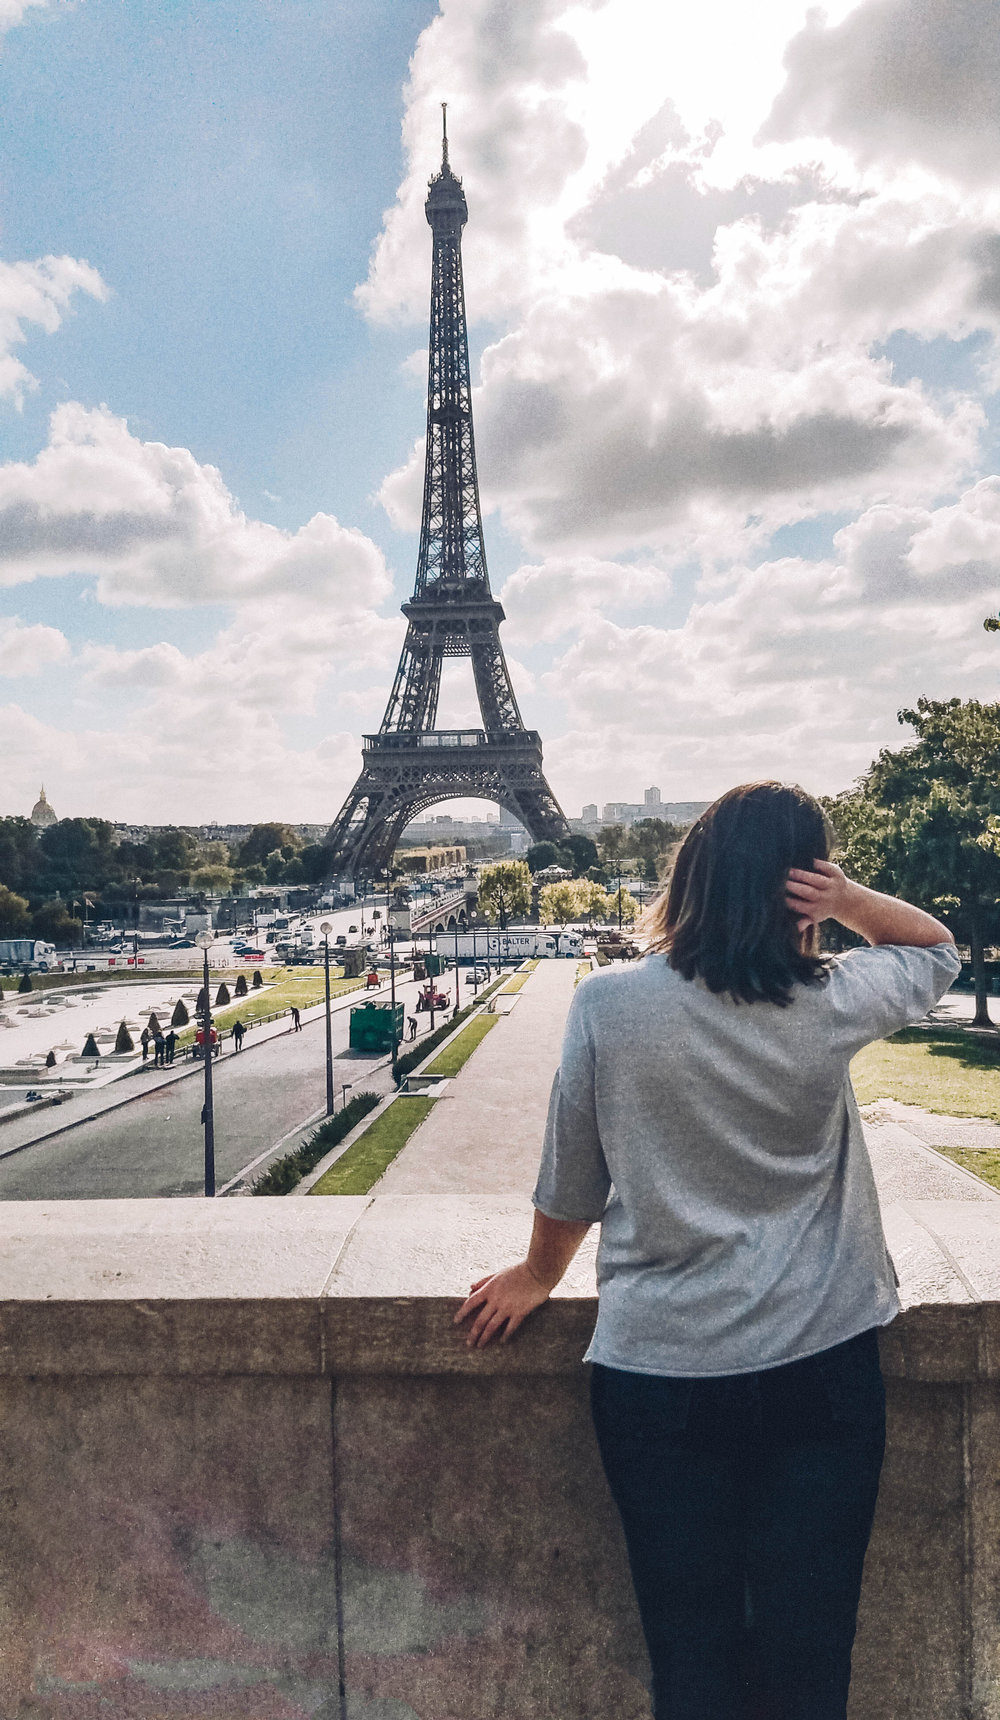 Paris is a stunning city filled with beautiful landmarks, architecture and history. Even if you only have one day in this beautiful destination, you can walk to many of the amazing sites. Grab your comfy shoes and read ahead for the ultimate one day walking itinerary of Paris including the Eiffel Tower, the Louve and Notre Dame. #paris #france #travelitinerary